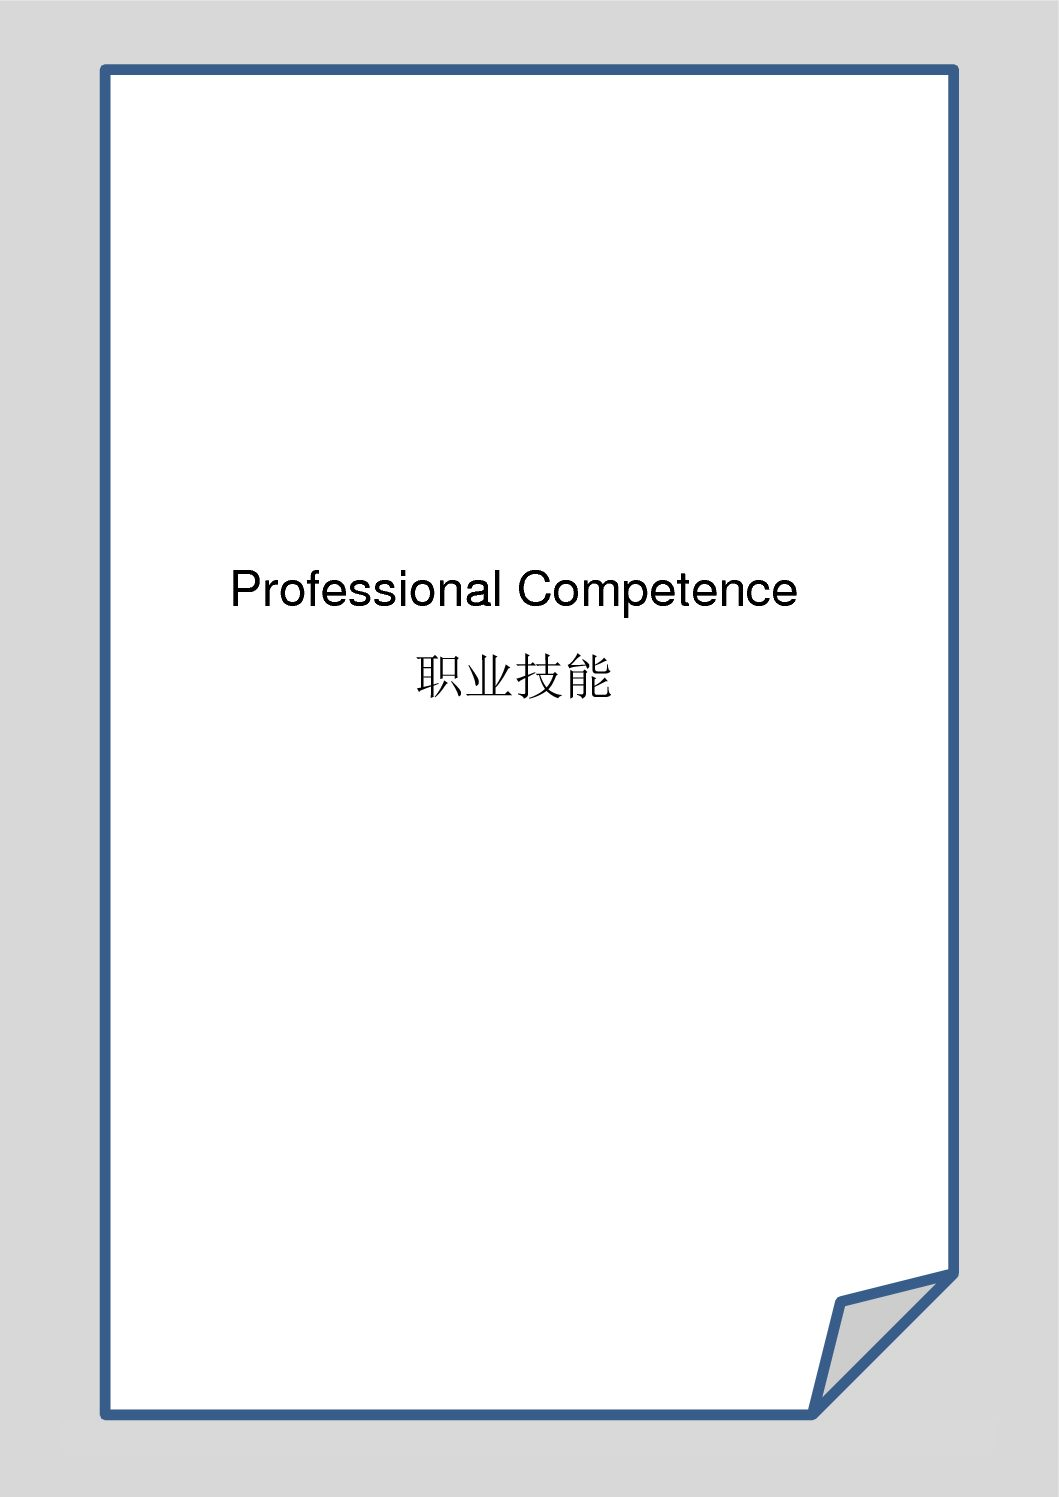 Professional Competence